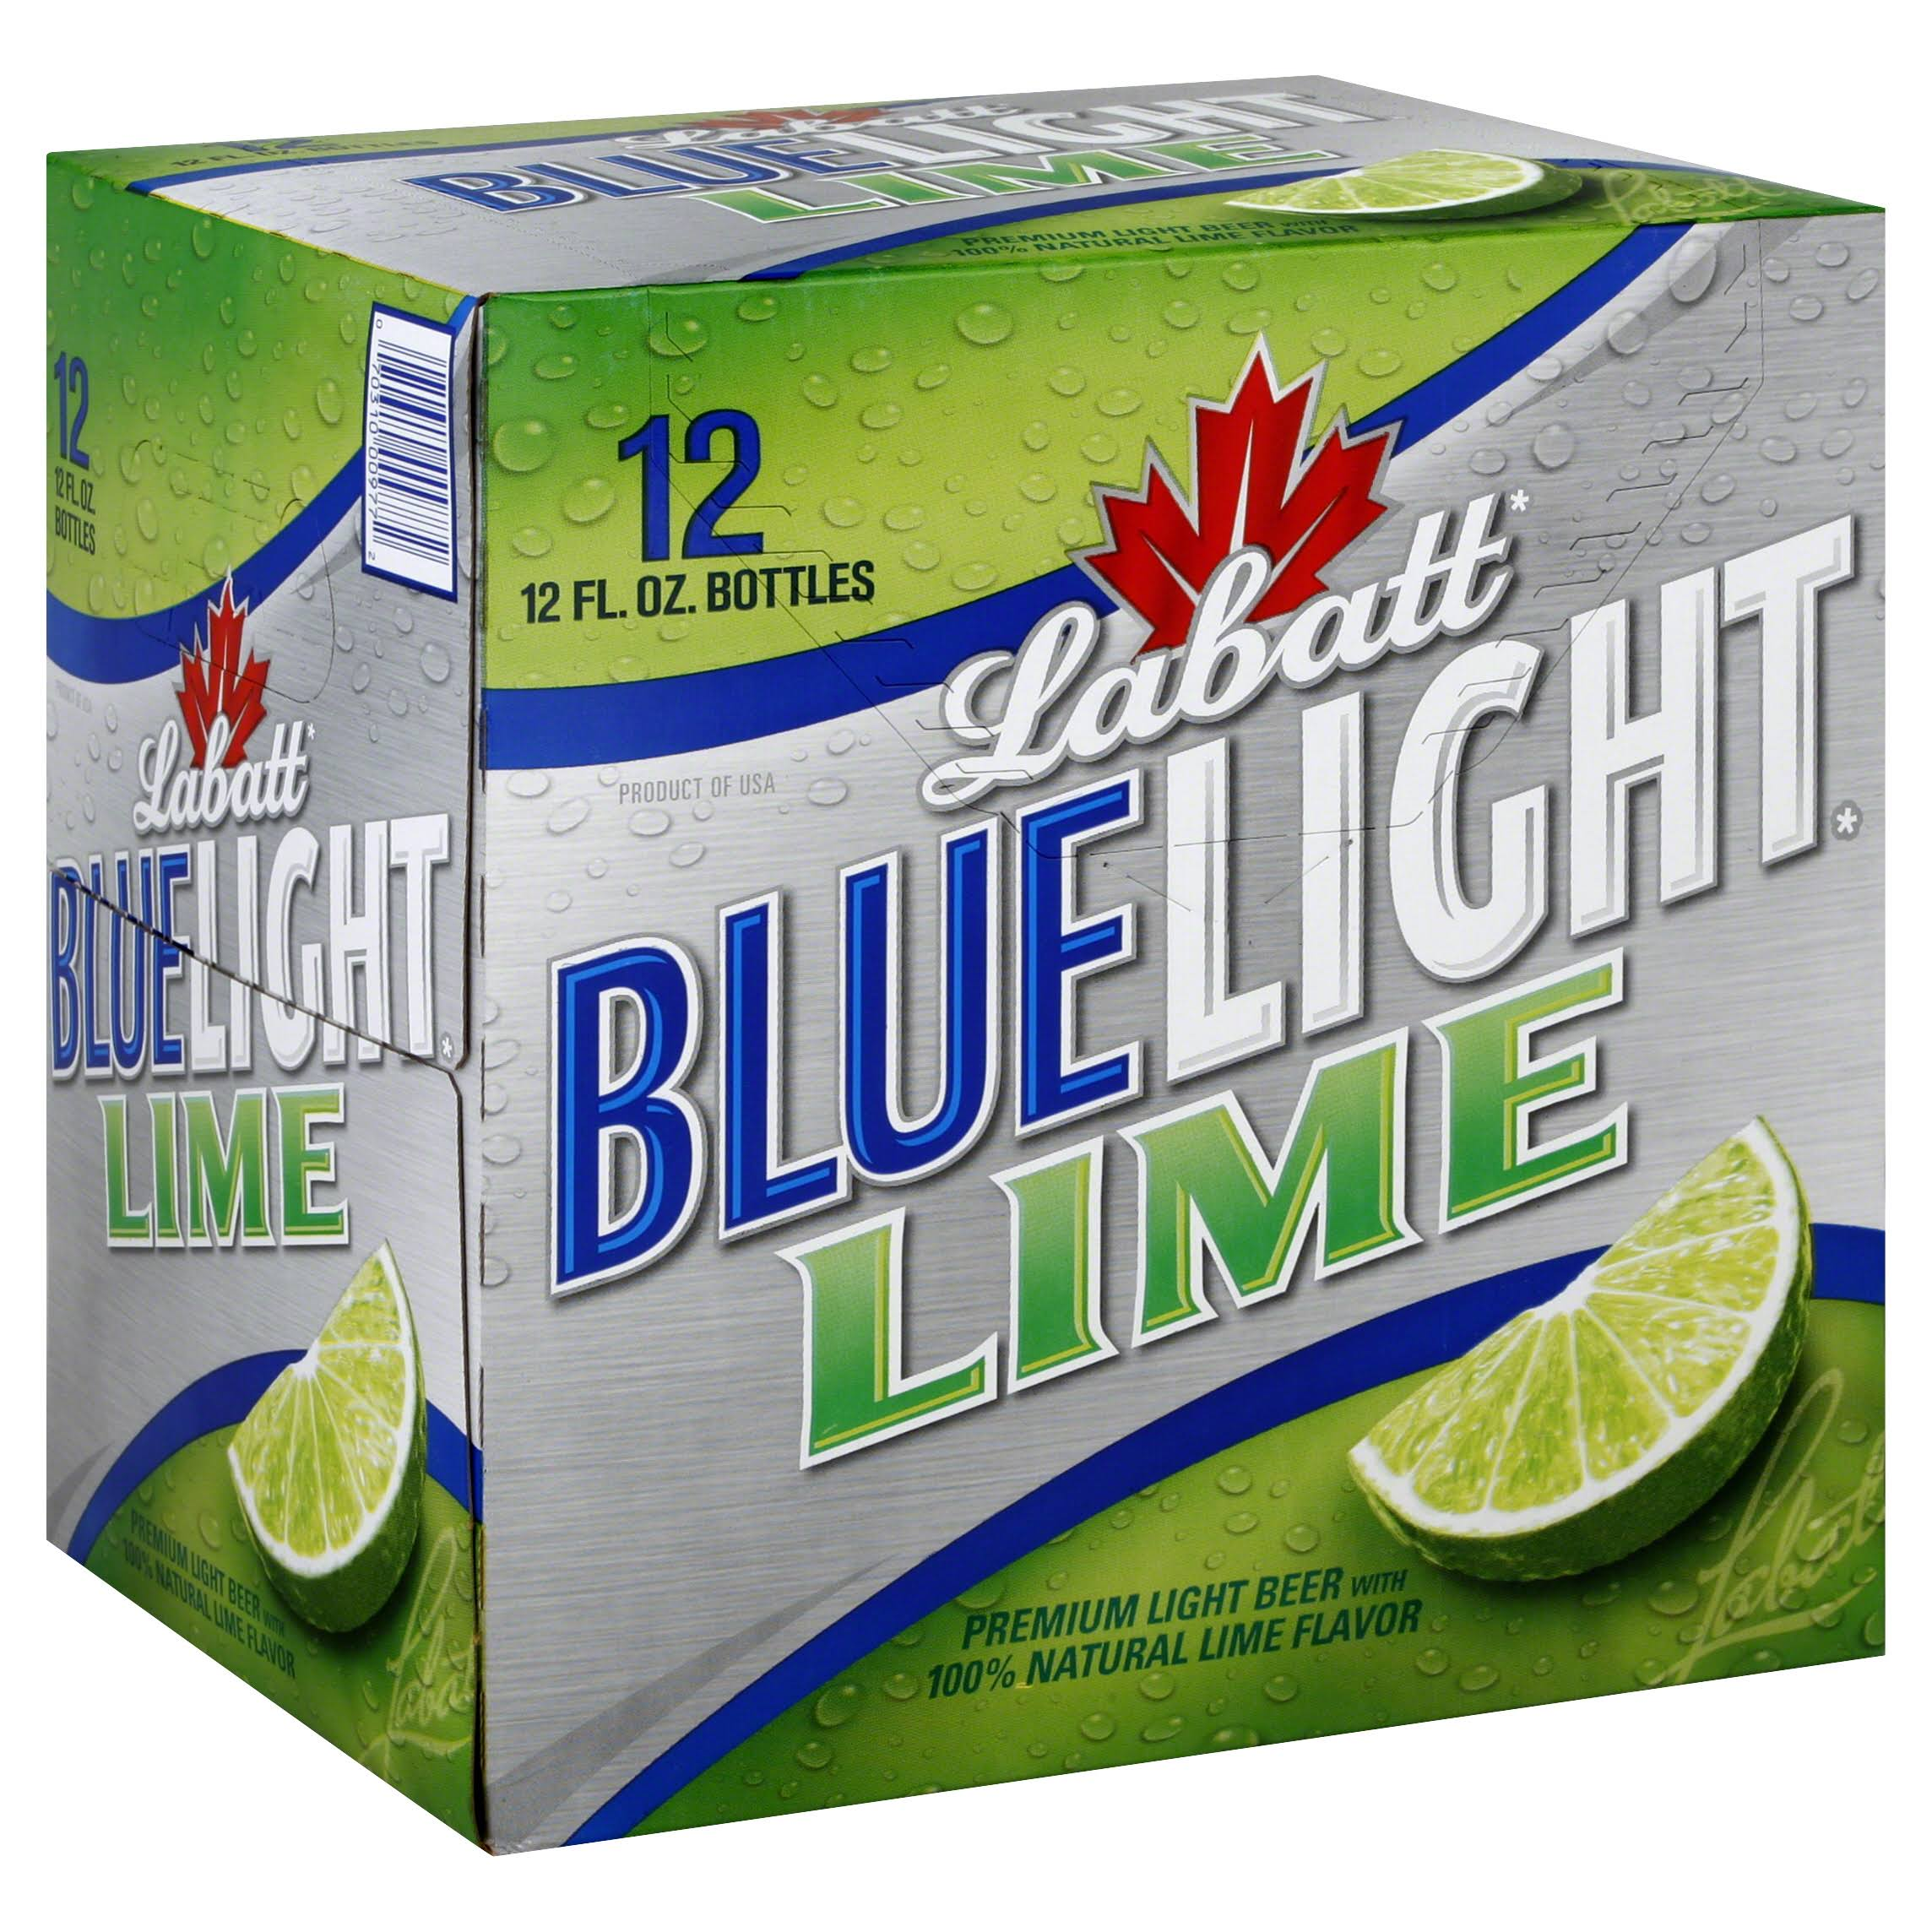 Labatt Blue Light Lime Beer - 12oz, 12 Pack